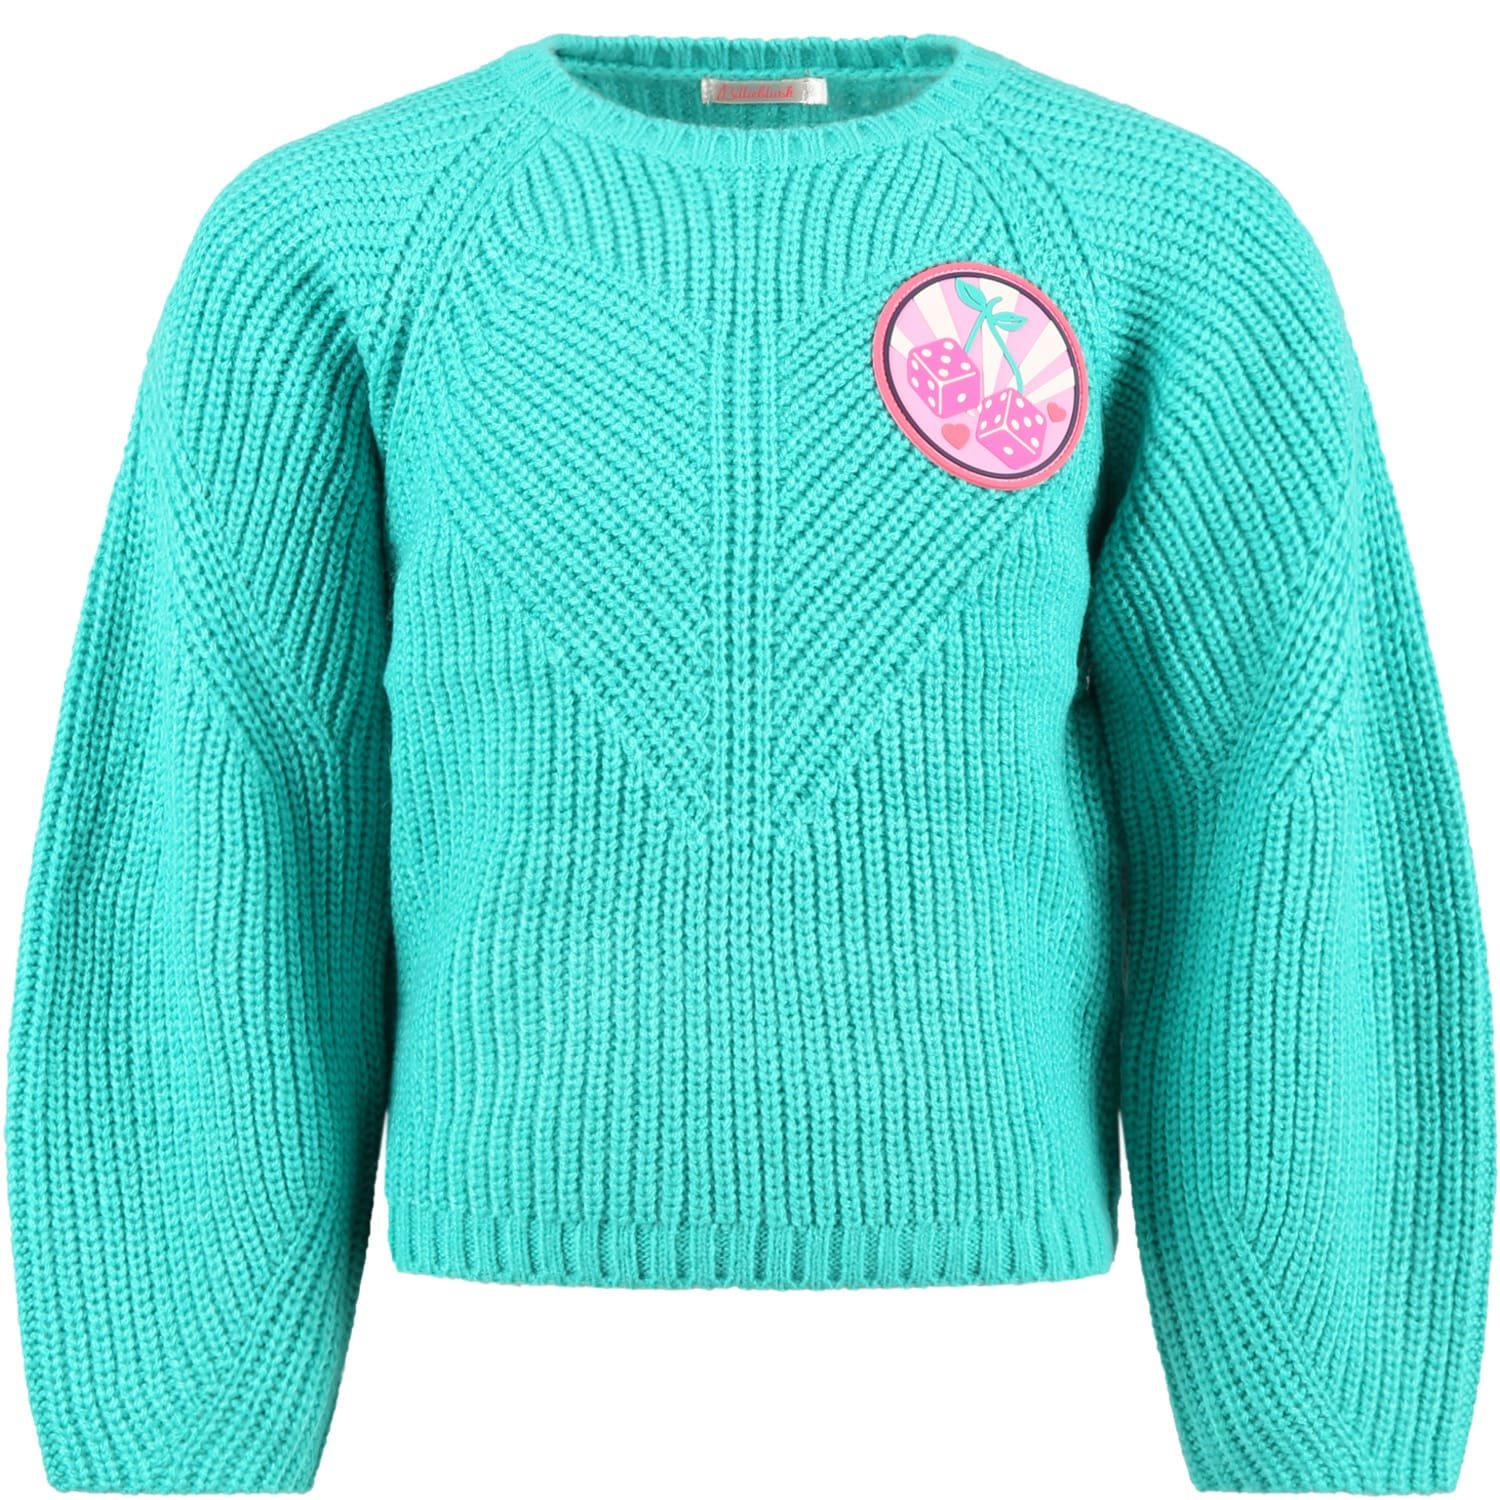 Green Sweater For Girl With Logo